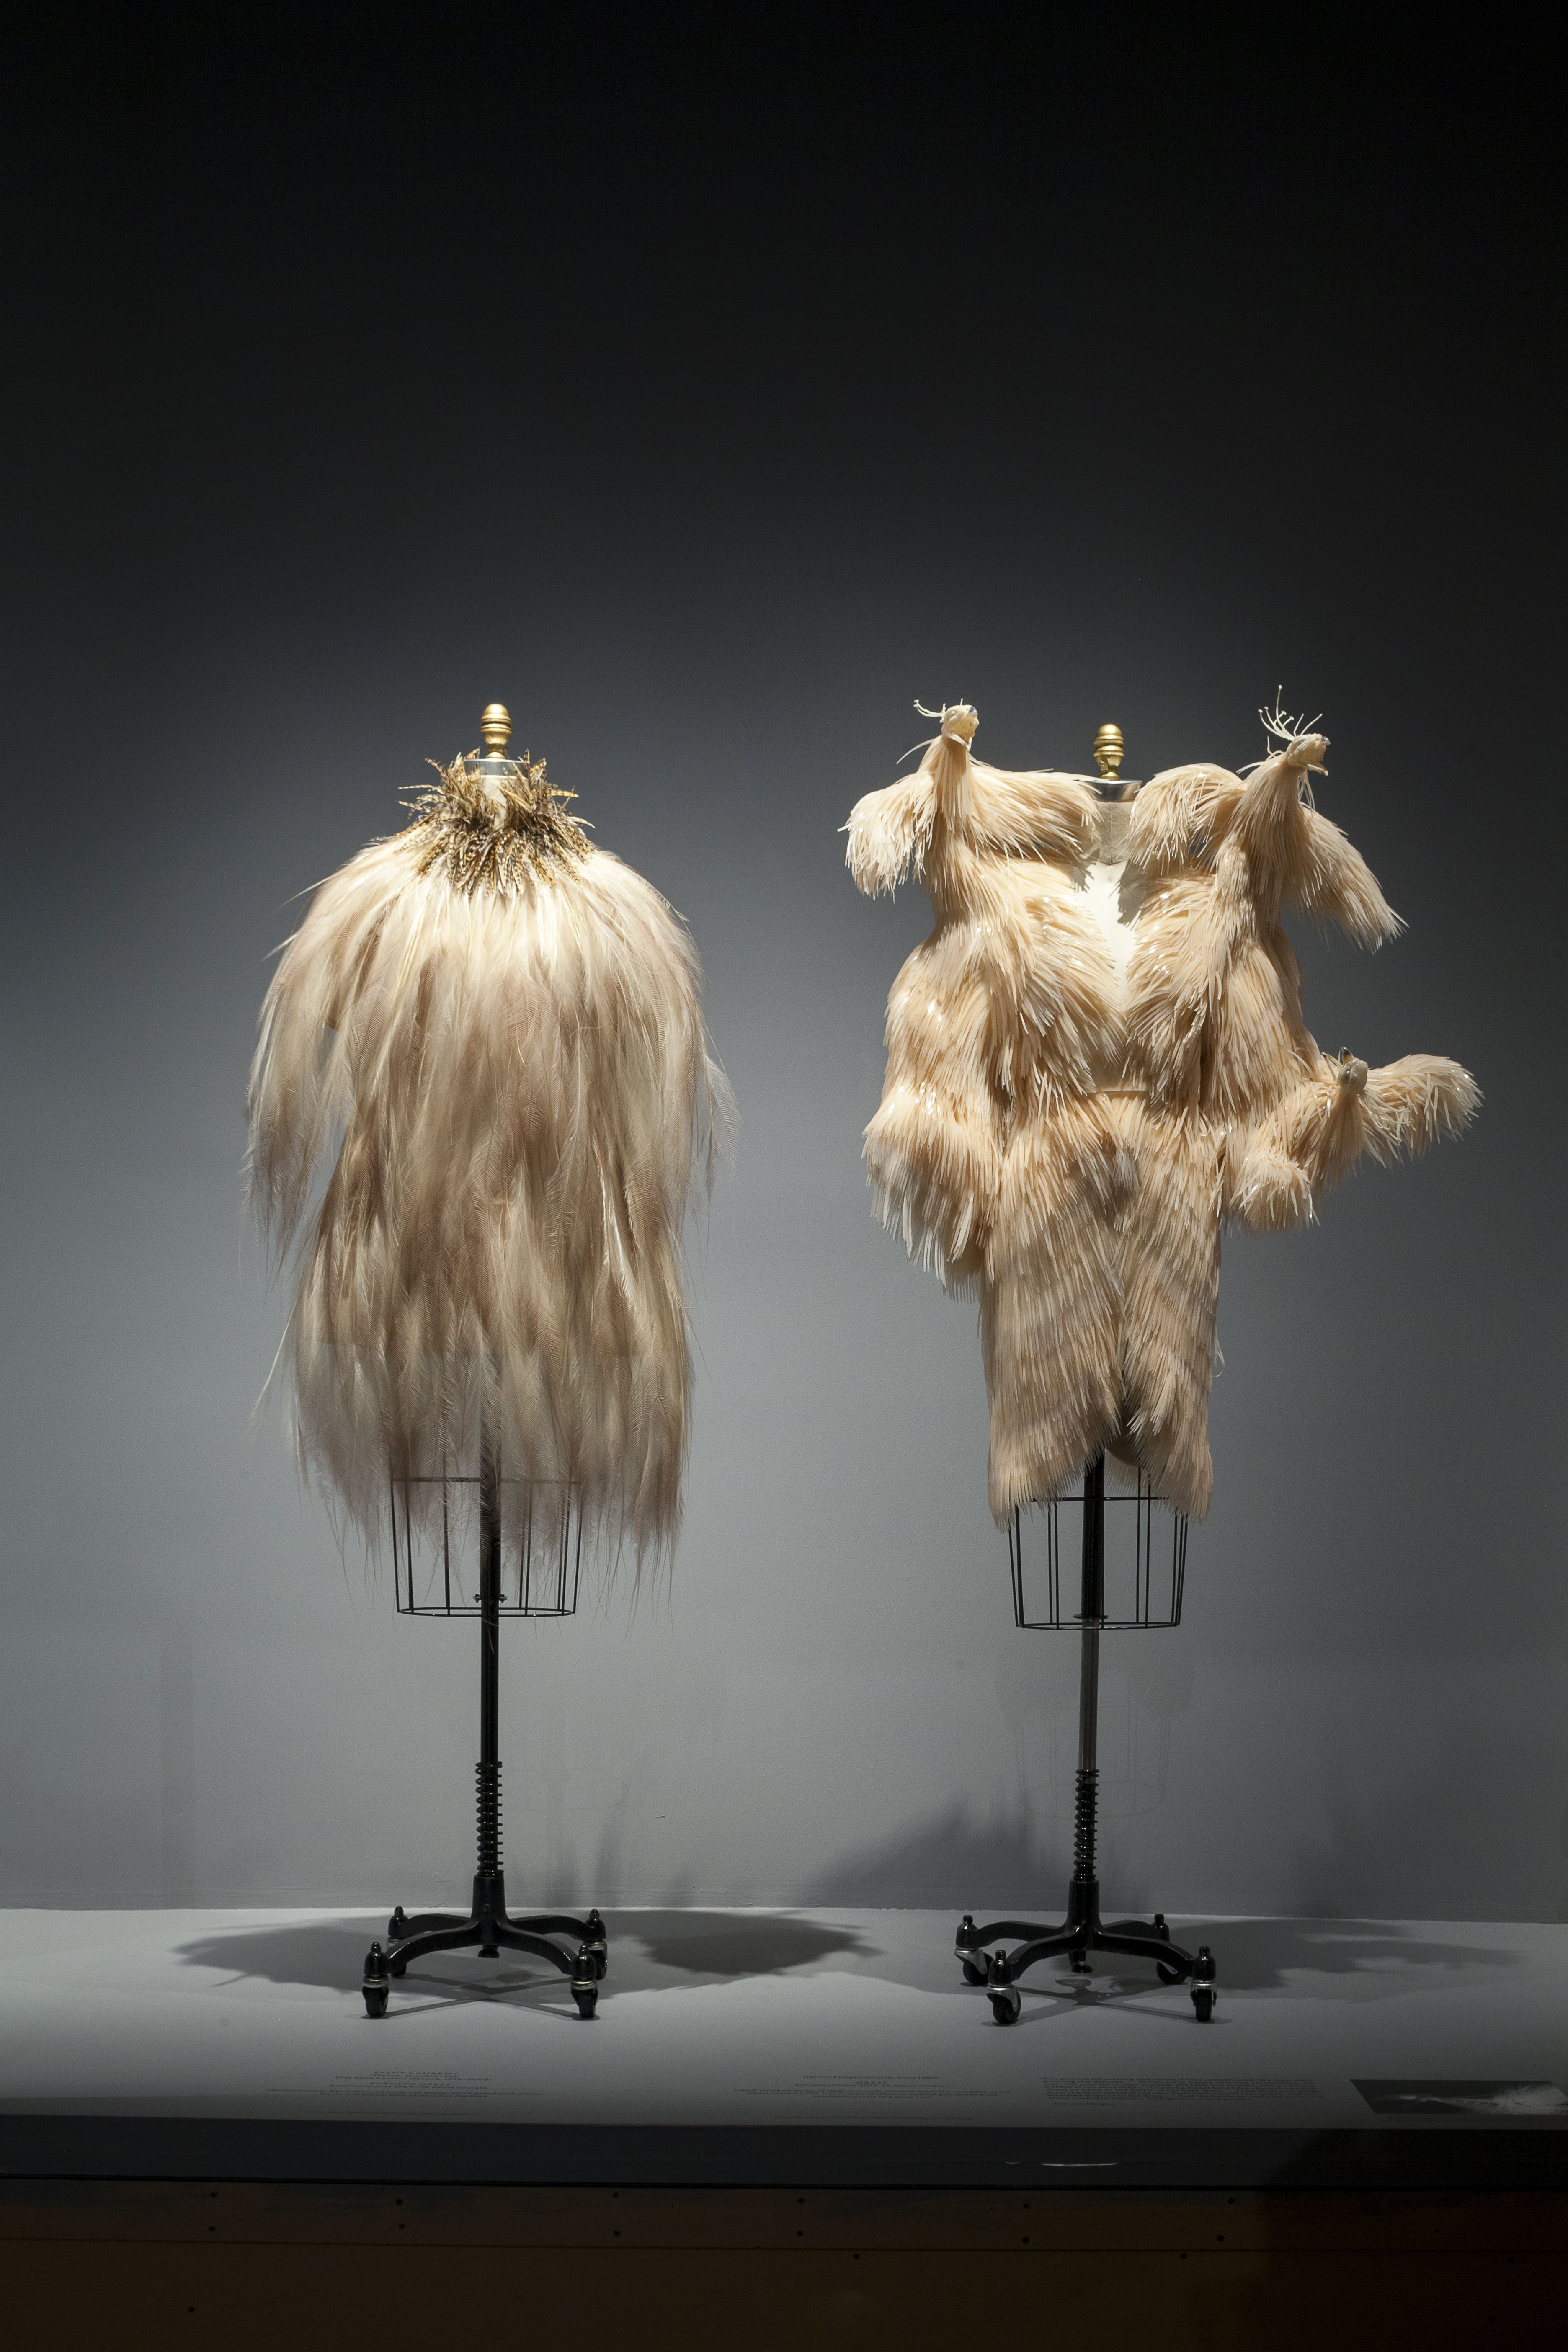 An Iris van Herpen dress made of laser-cut silicone feathers and hand-applied silicone-coated gull skulls.